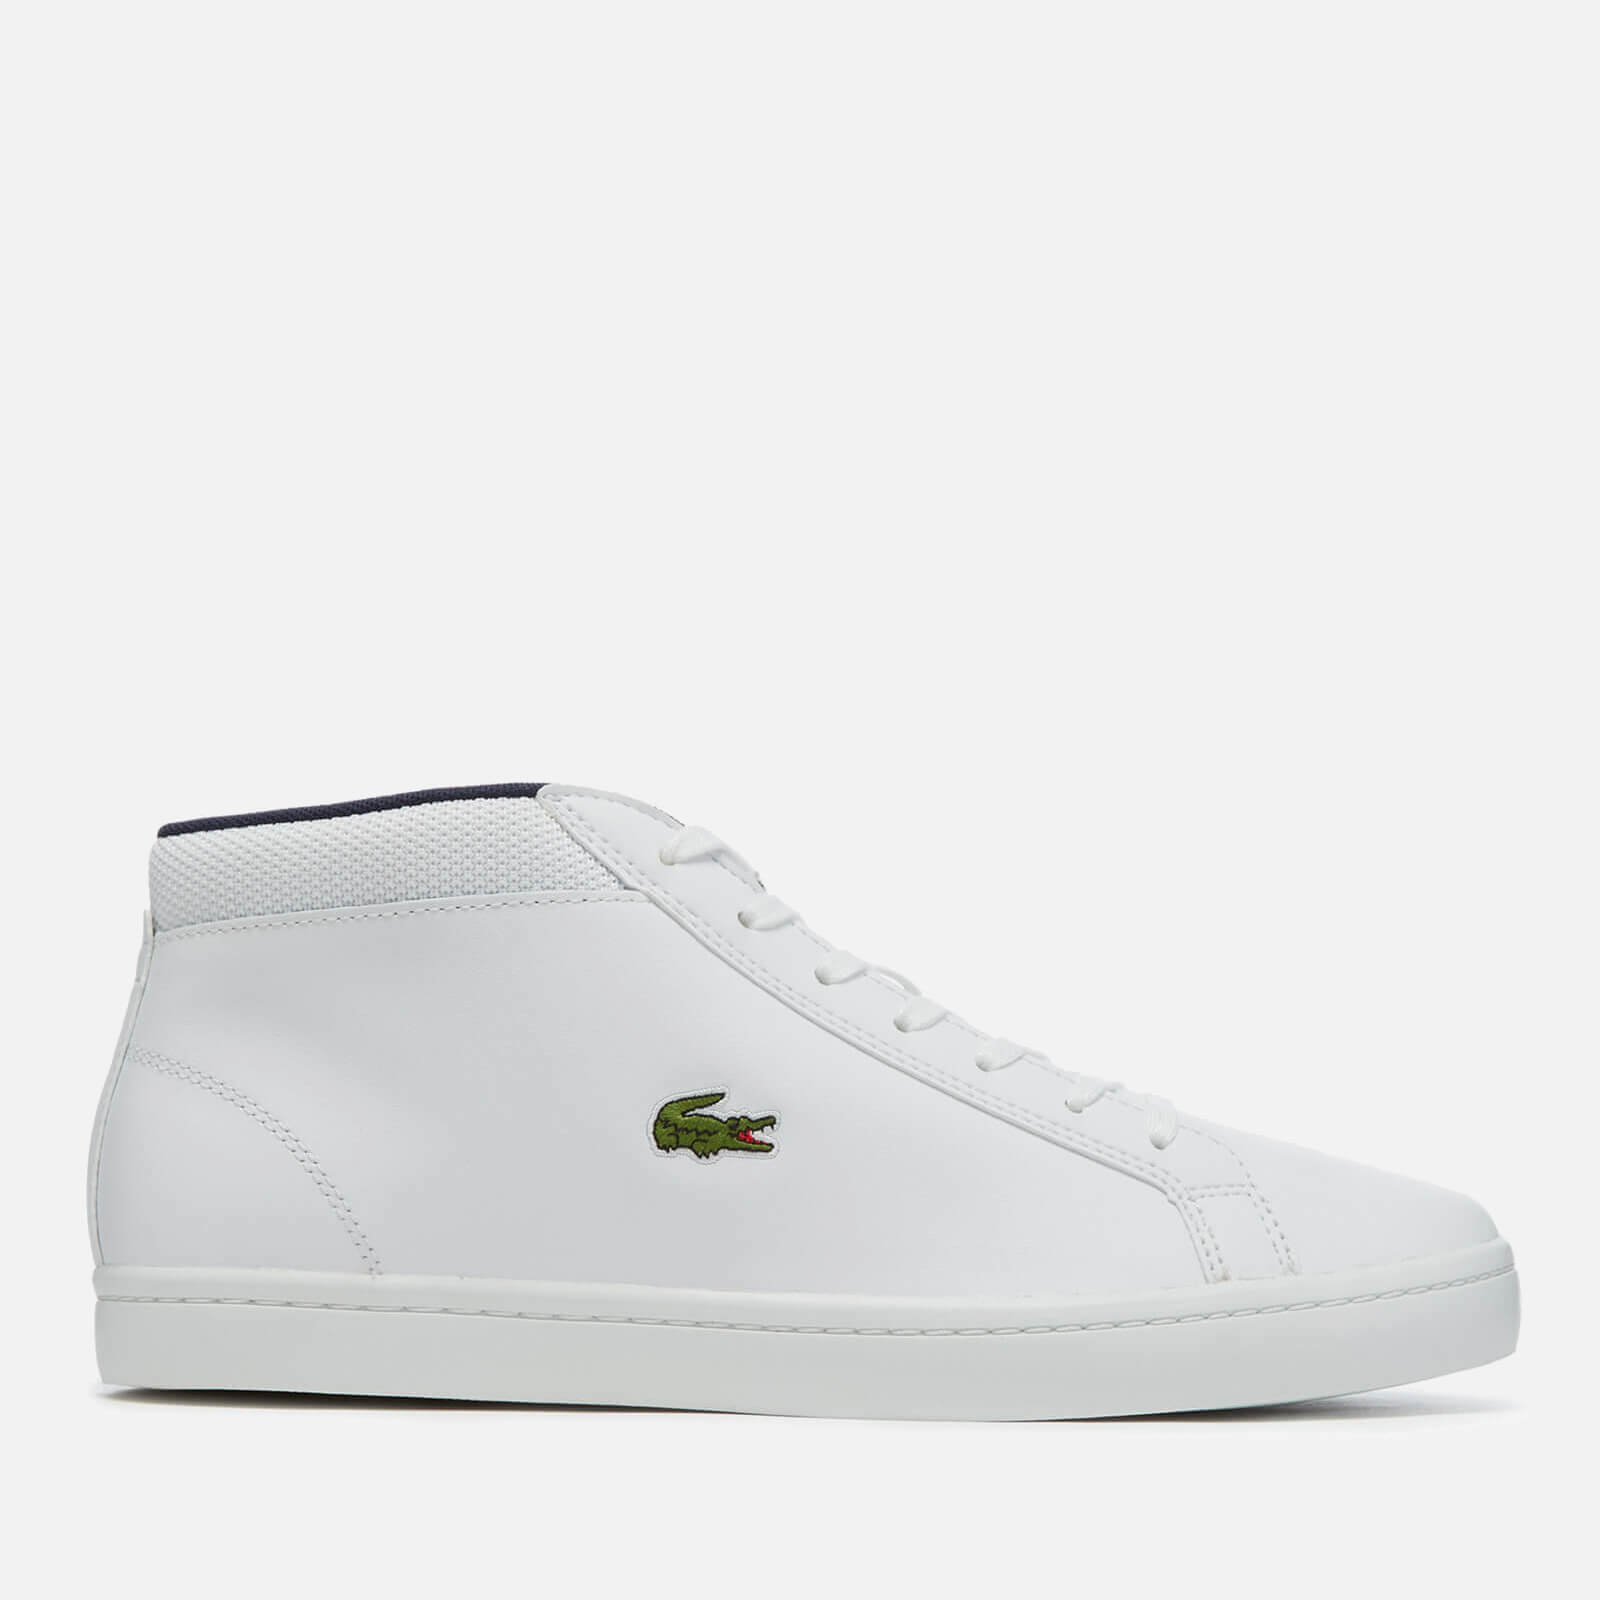 590e8e759347 ... Lacoste Men s Straightset SP Chukka 117 1 Leather Mid-Top Trainers -  White